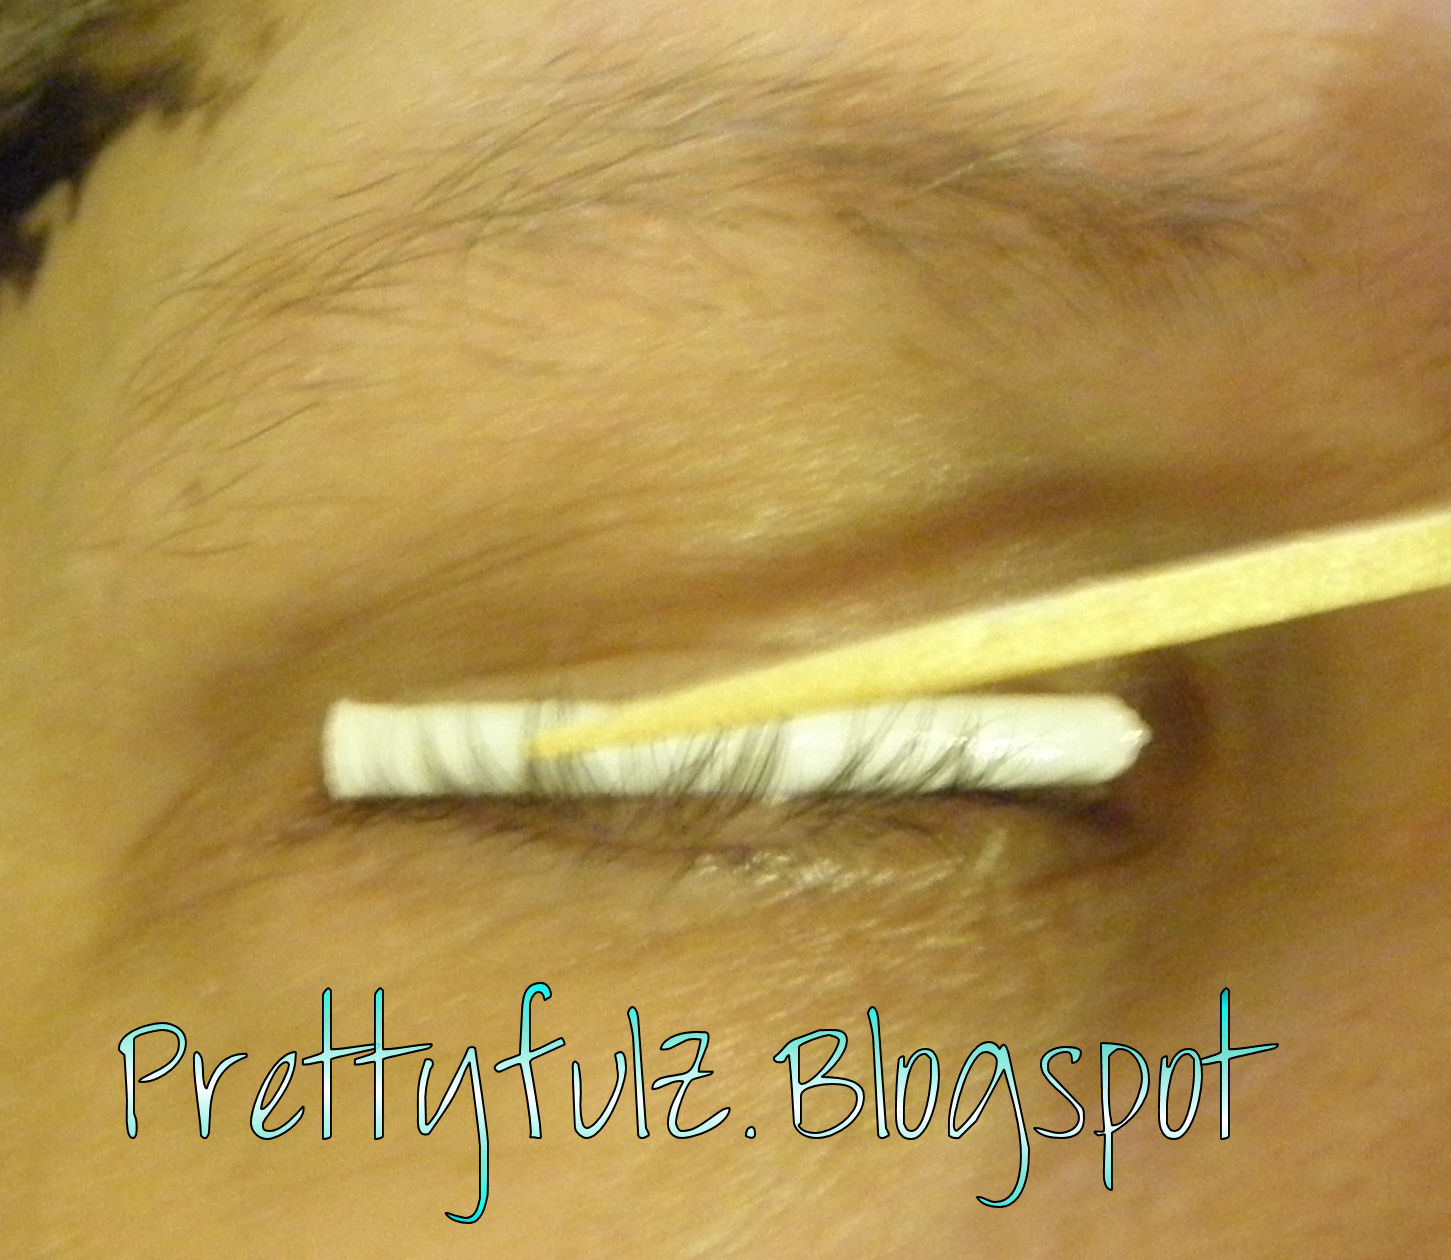 Prettyfulz how to perm your eyelashes at home diy using a toothpick sweep the eyelashes up onto the rod and gently press them against the rod to get them to stick try to keep the eyelashes in order solutioingenieria Choice Image